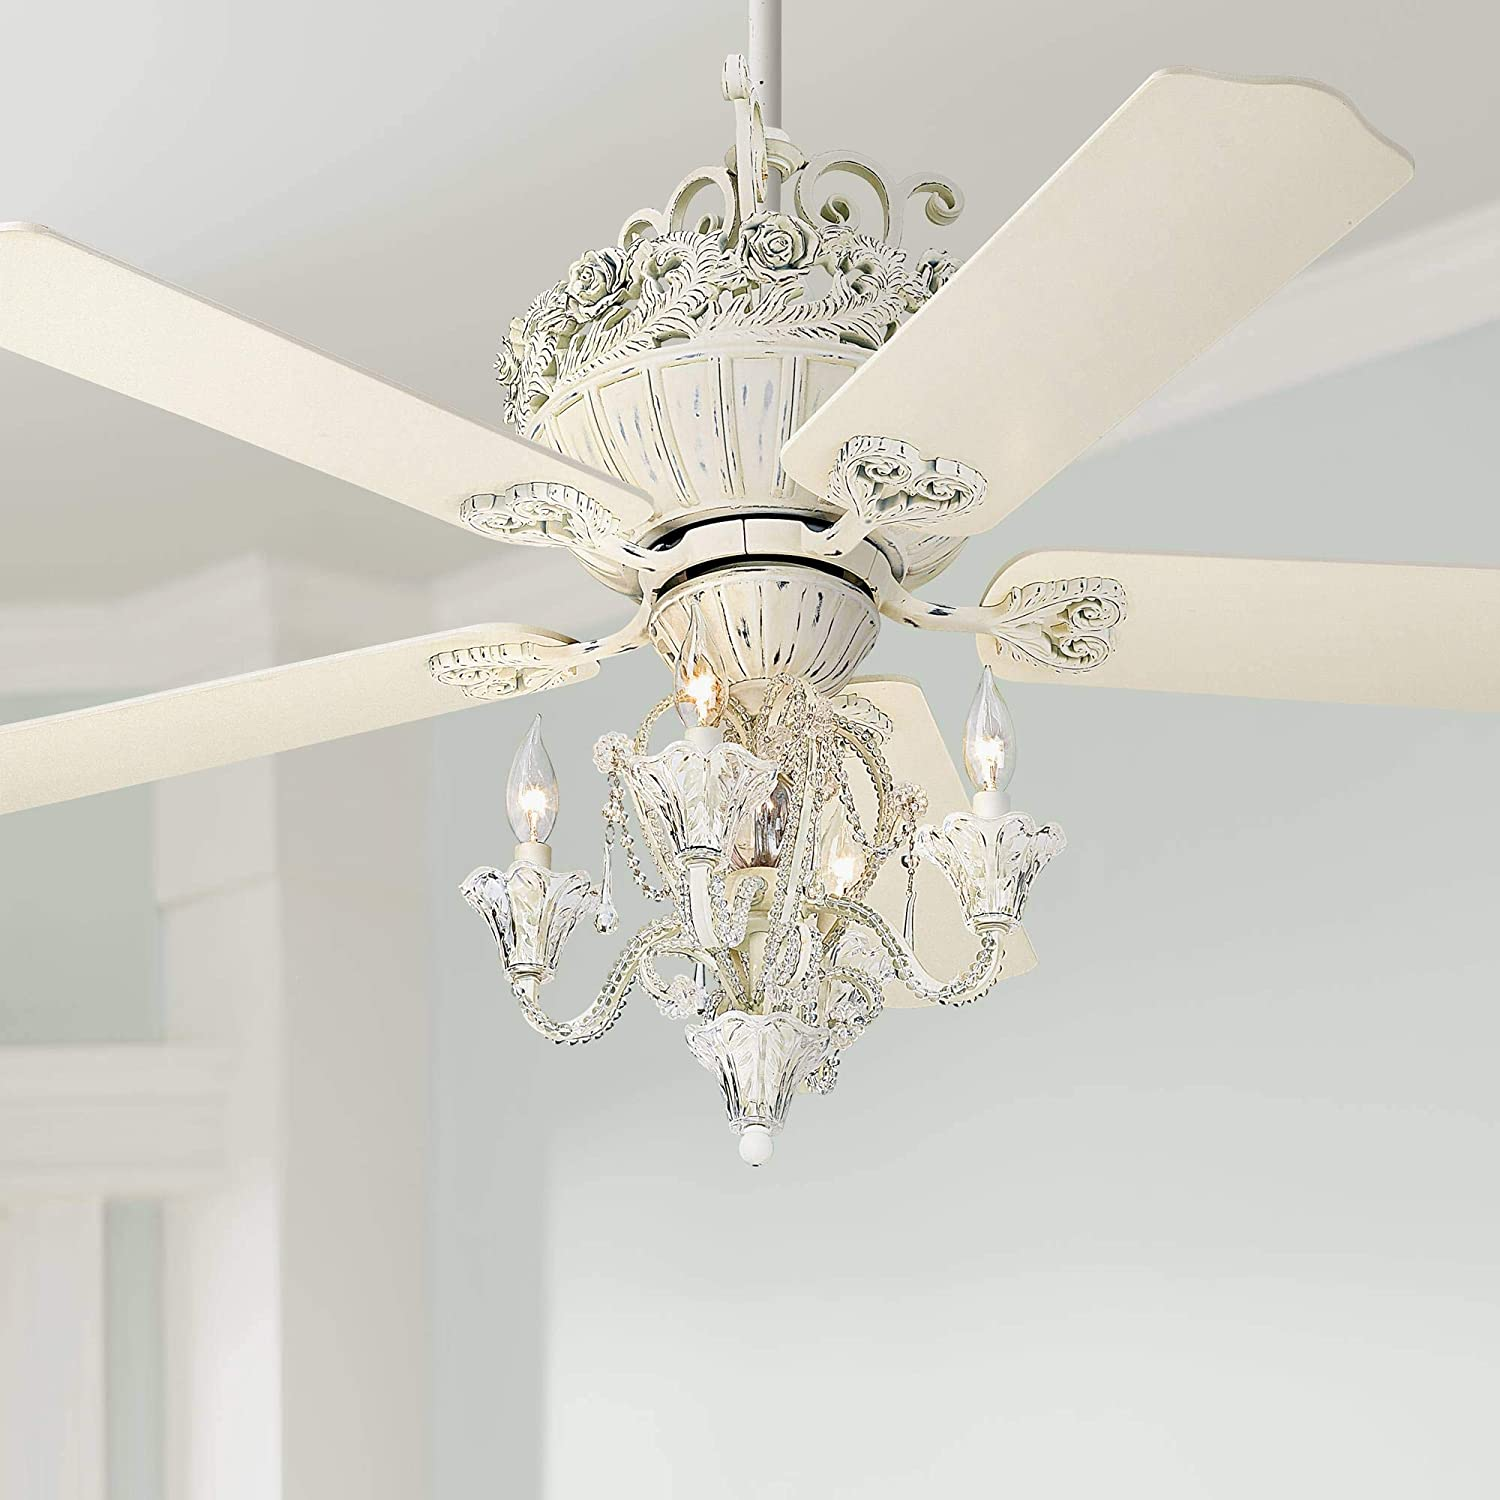 52 Casa Vintage Chic Ceiling Fan with Light LED Dimmable Crystal Chandelier Rubbed White for Living Room Kitchen Bedroom Family Dining – Casa Vieja